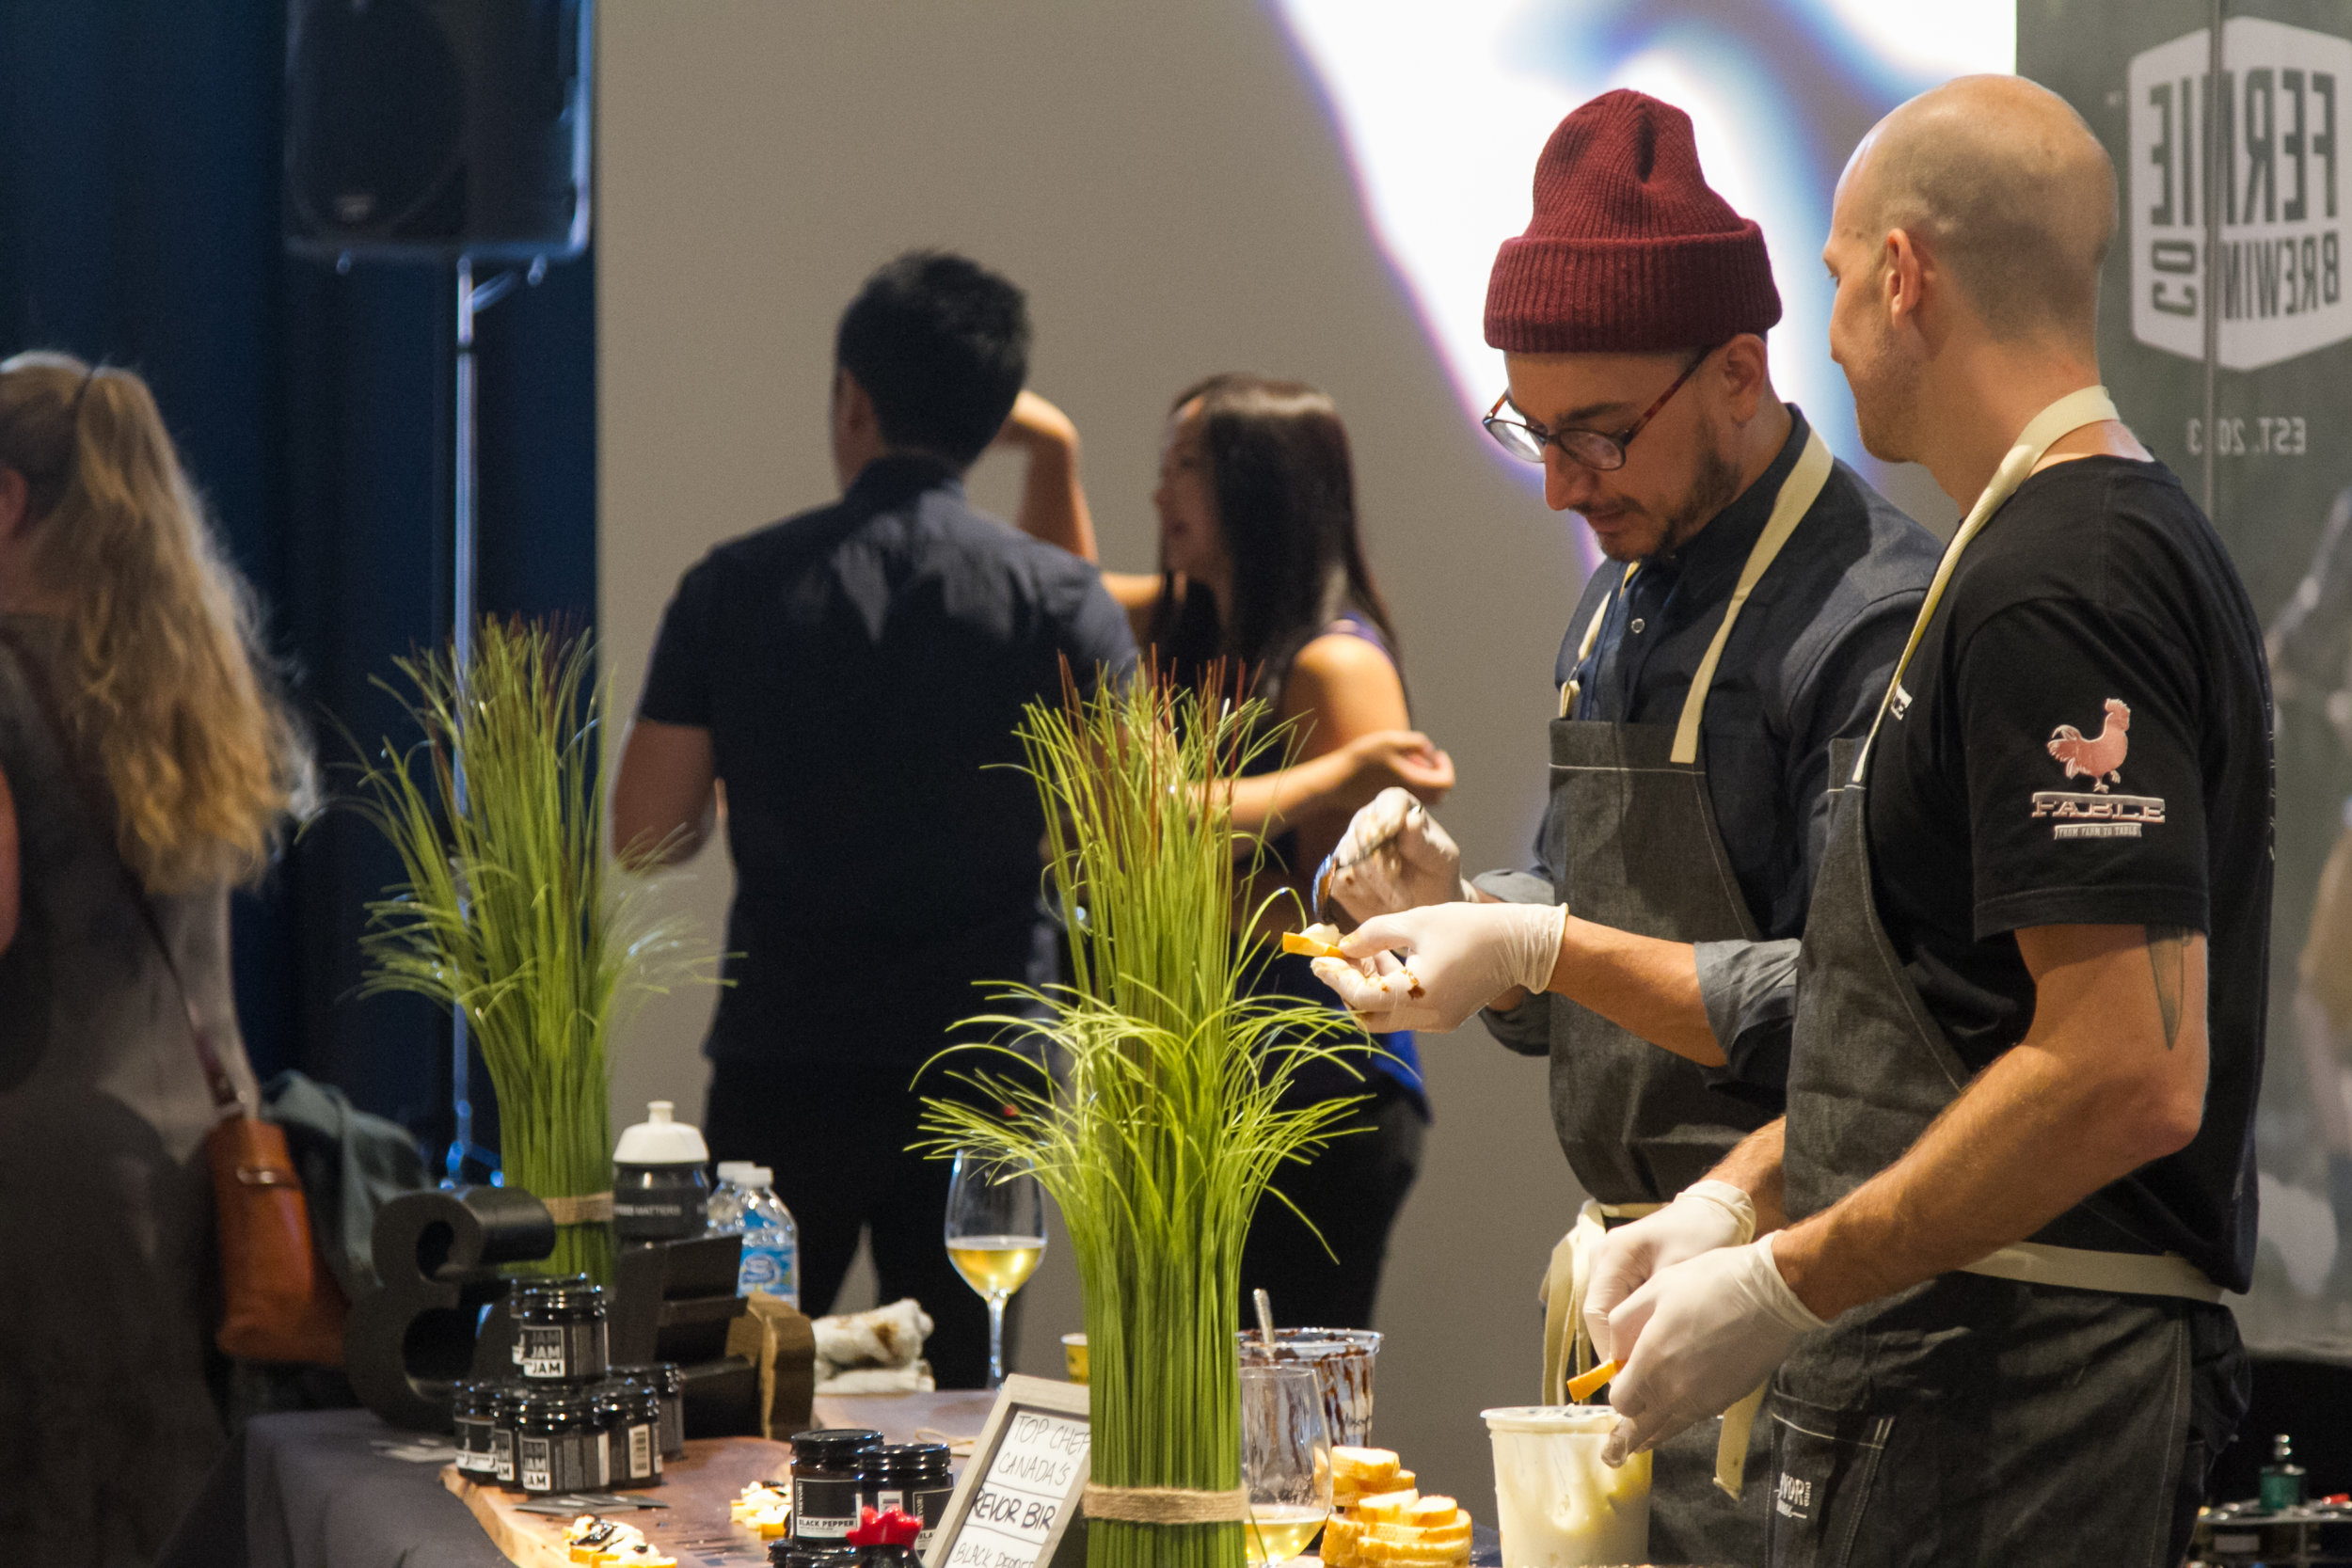 Trevor Bird preparing the black jam crostini himself at the Cheese and Meat Festival Vancouver.